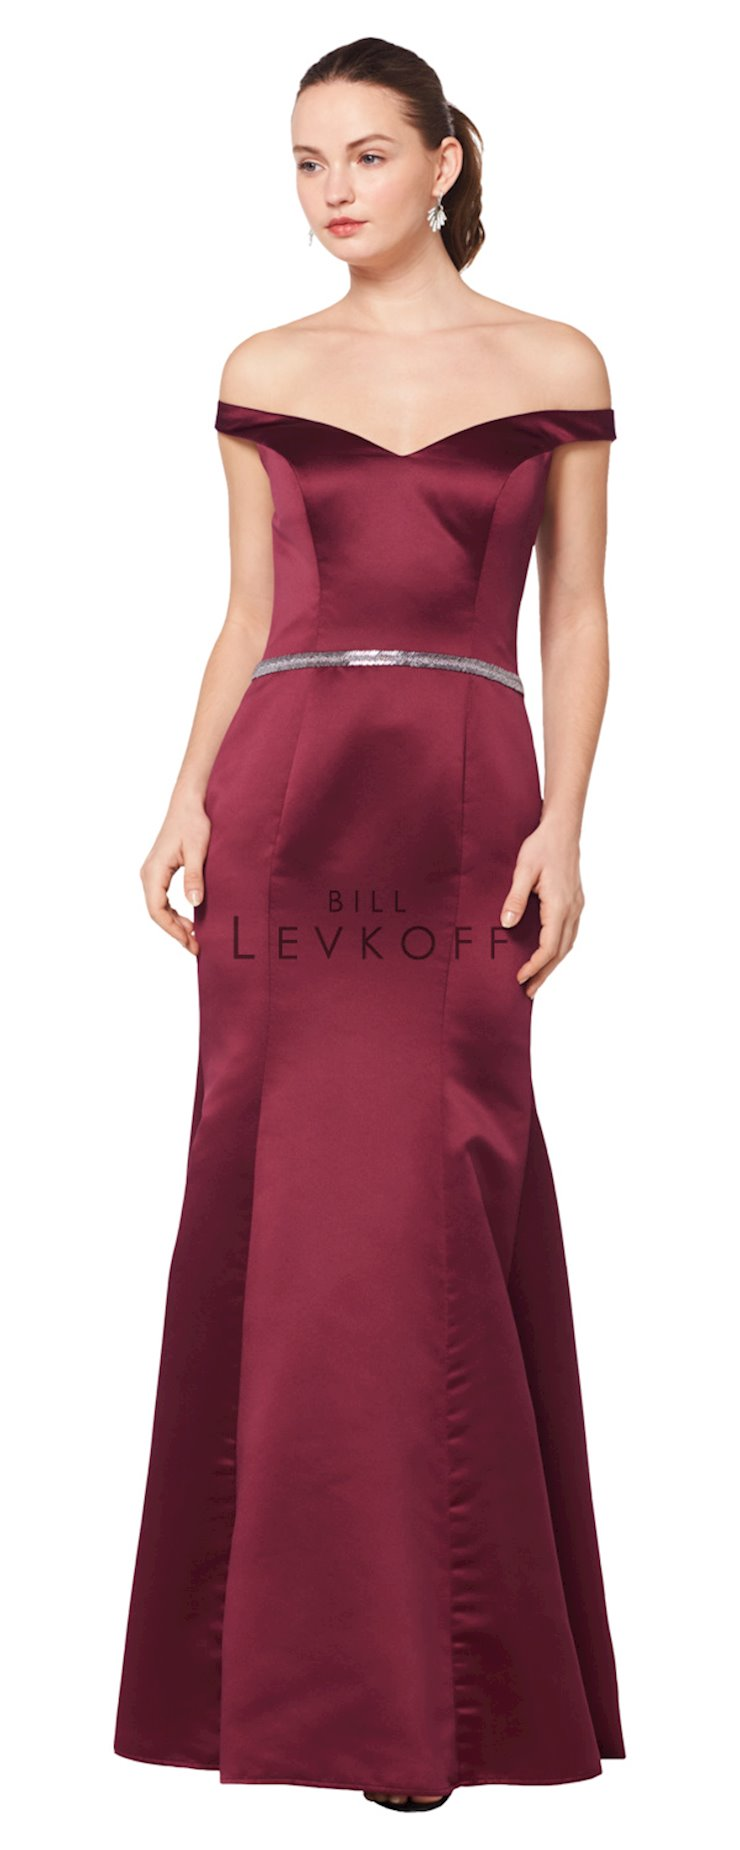 Bill Levkoff Style #1615 Image